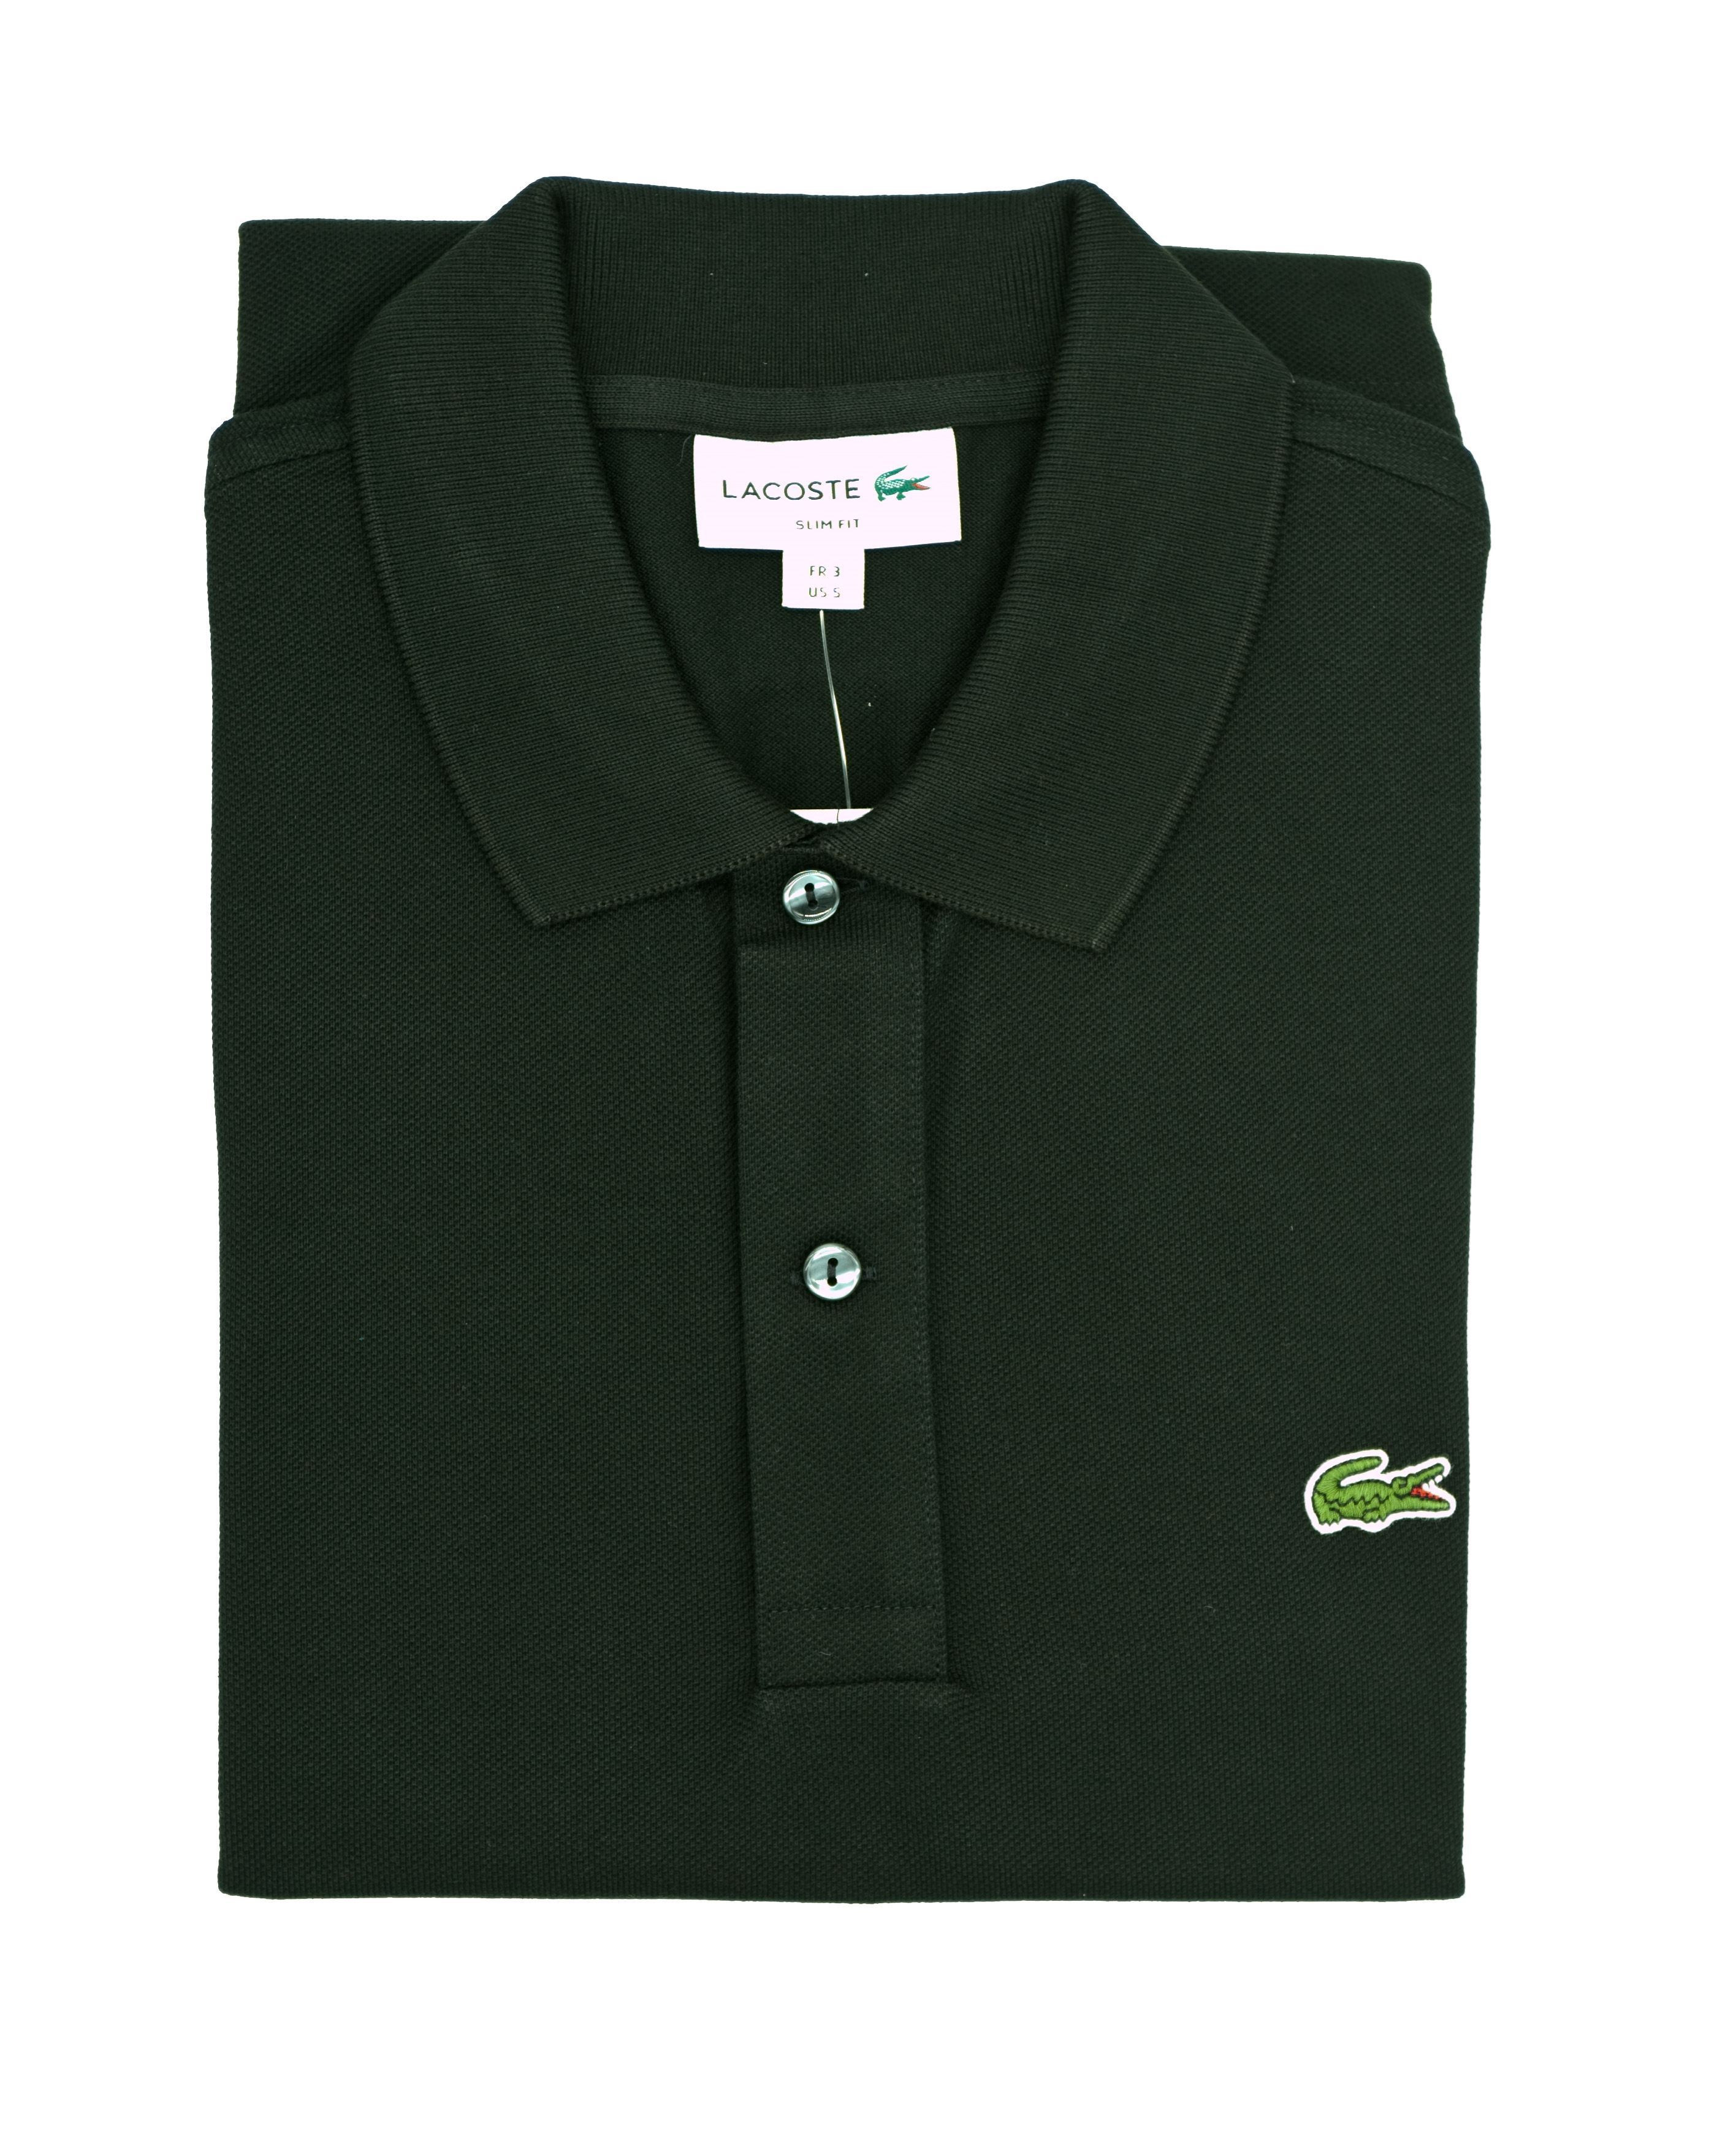 Picture of Black Lacoste polo